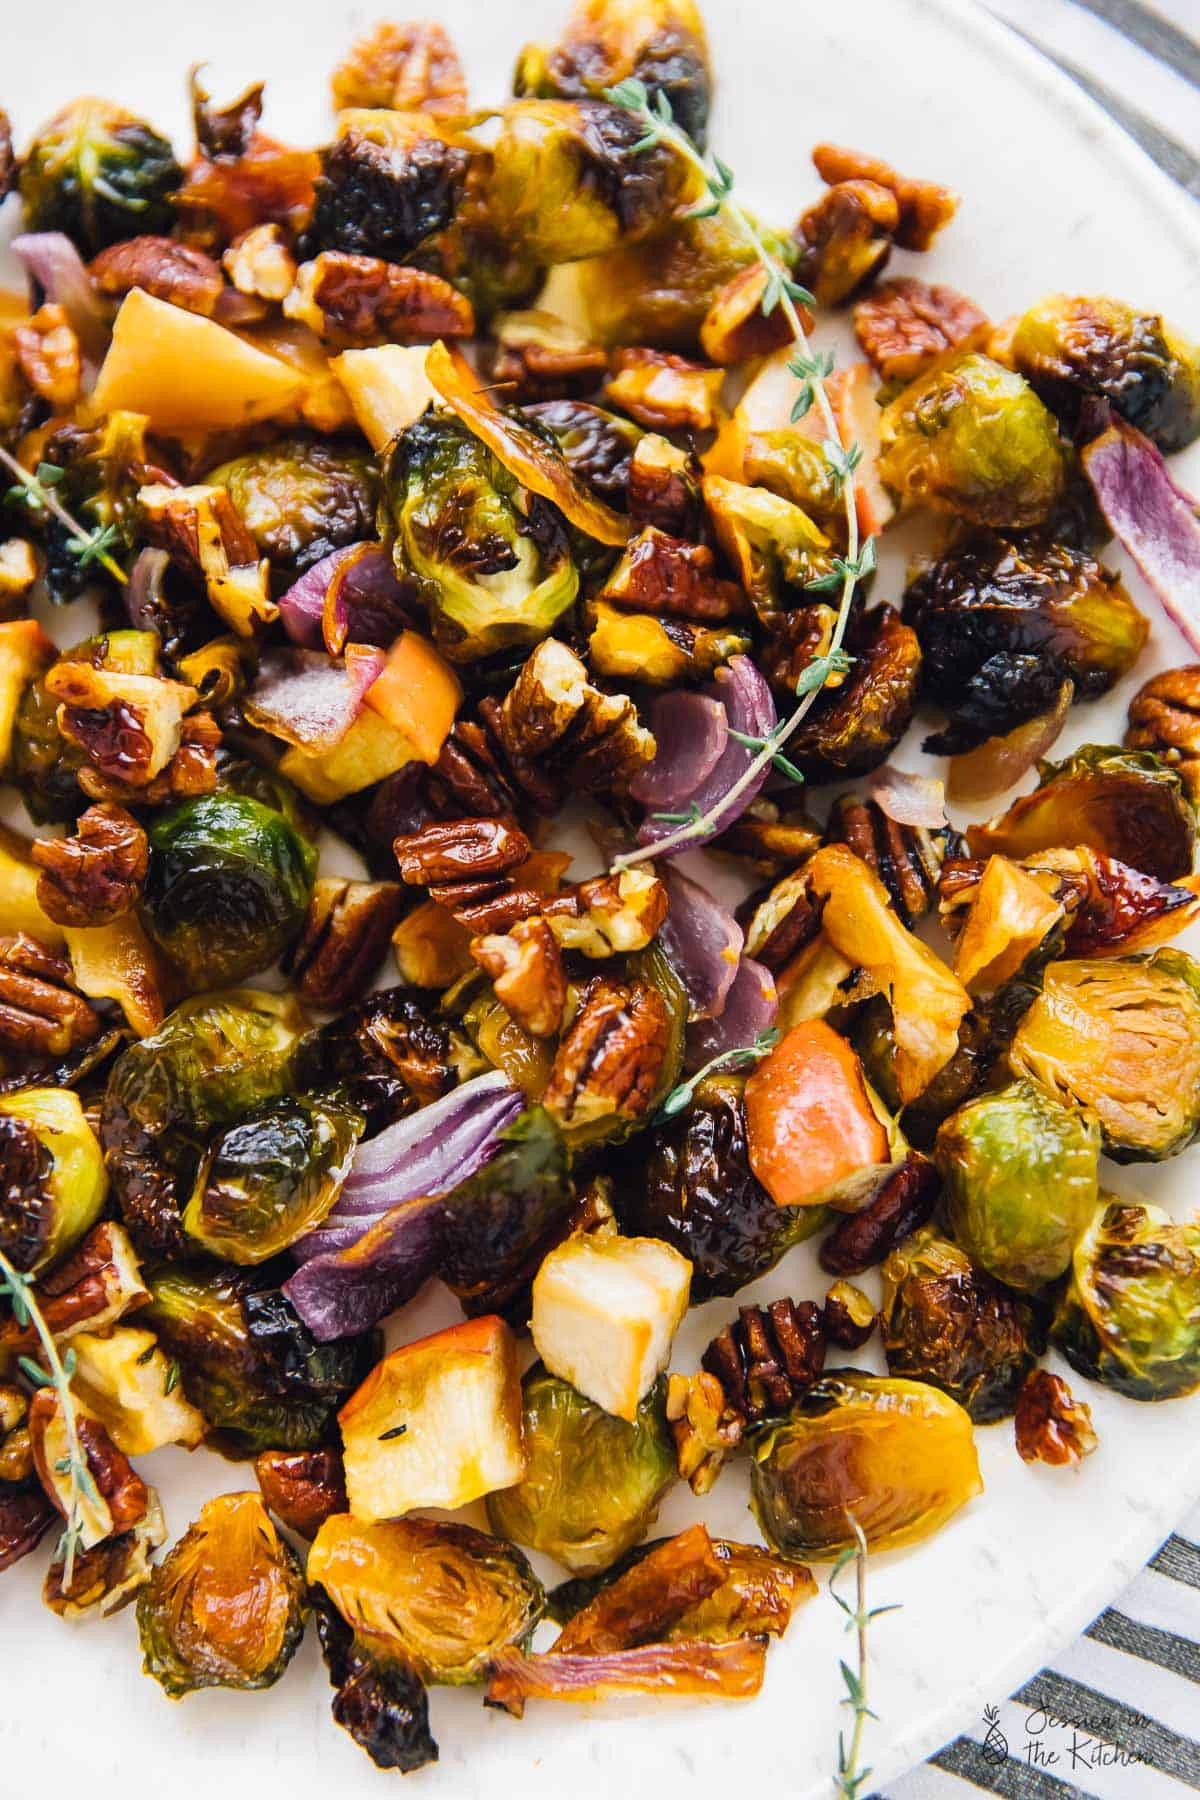 Maple roasted brussels sprouts with apples and pecans on a large plate.